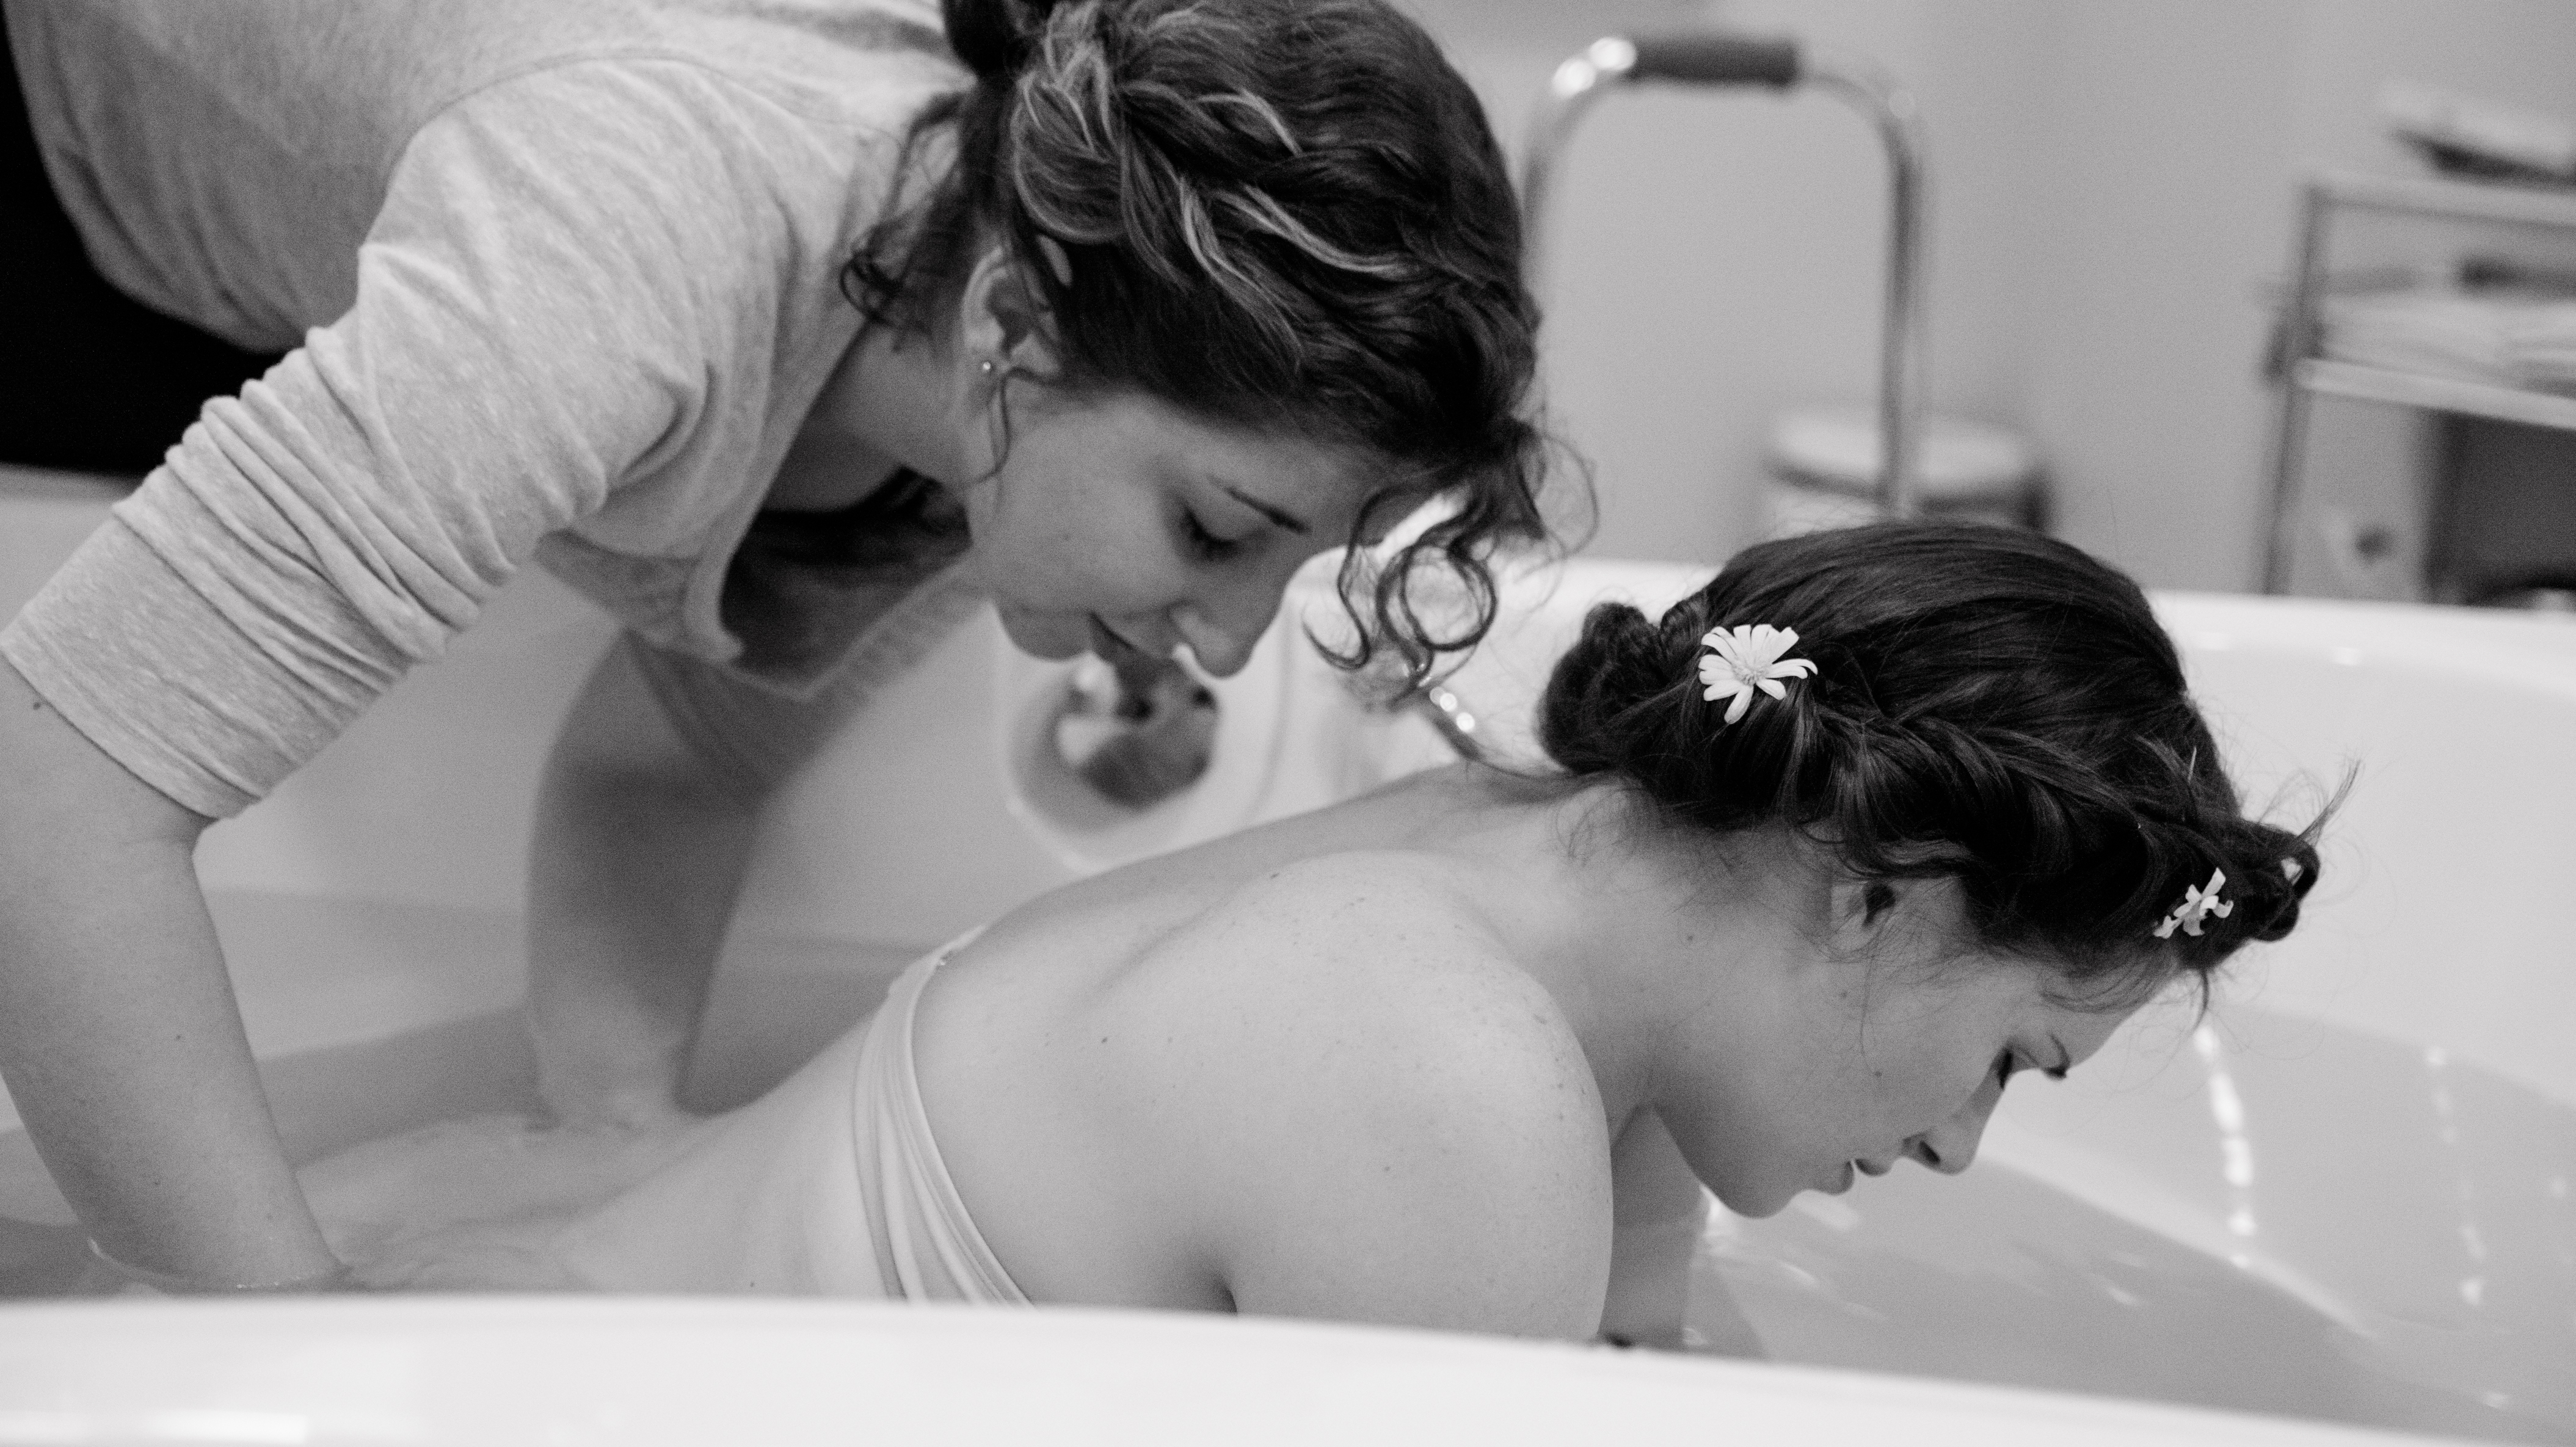 St. Pete doula applying counter-pressure to pregnant woman in tub.